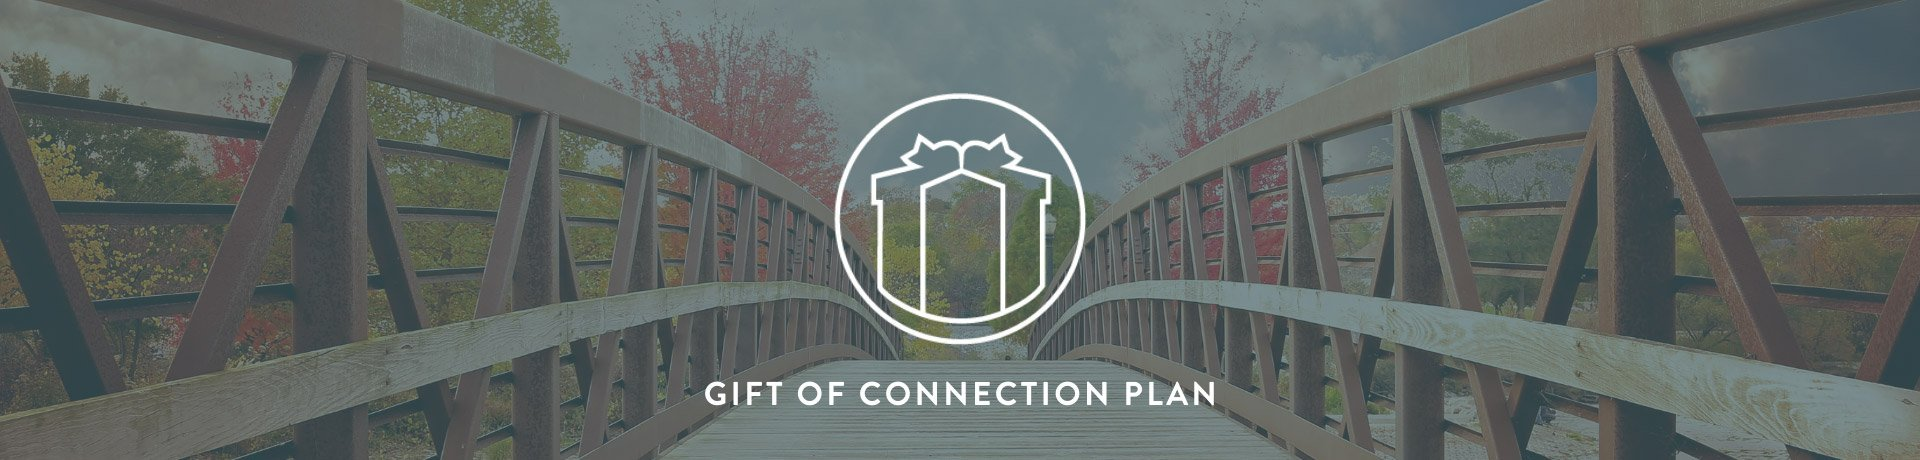 gift of connection plan